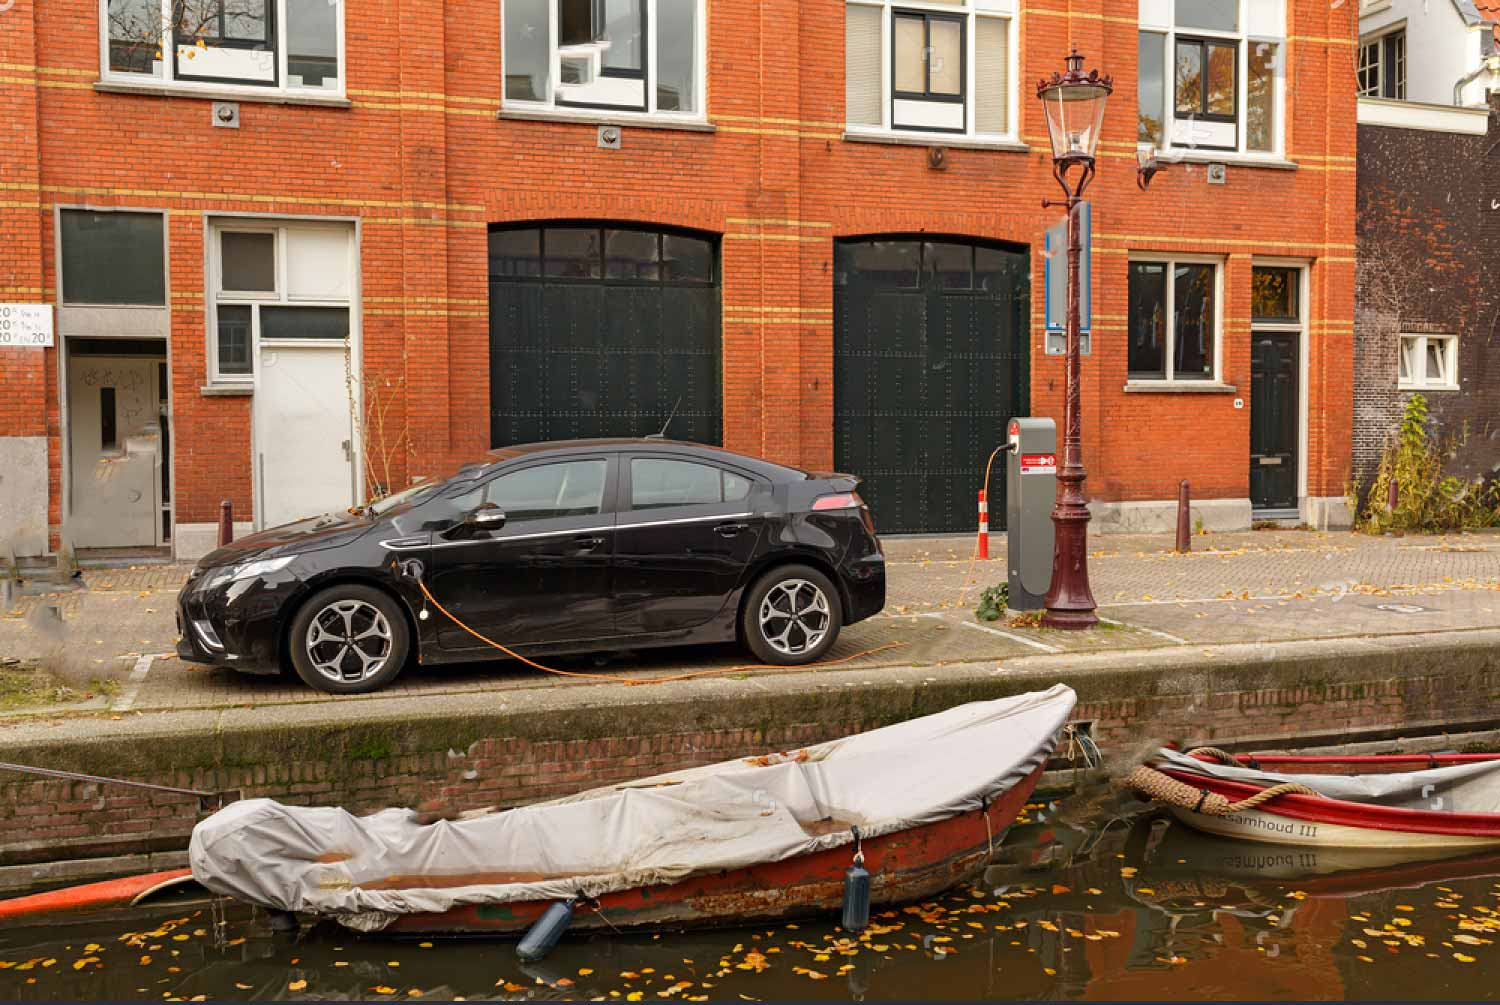 How to charge a boat battery with a car